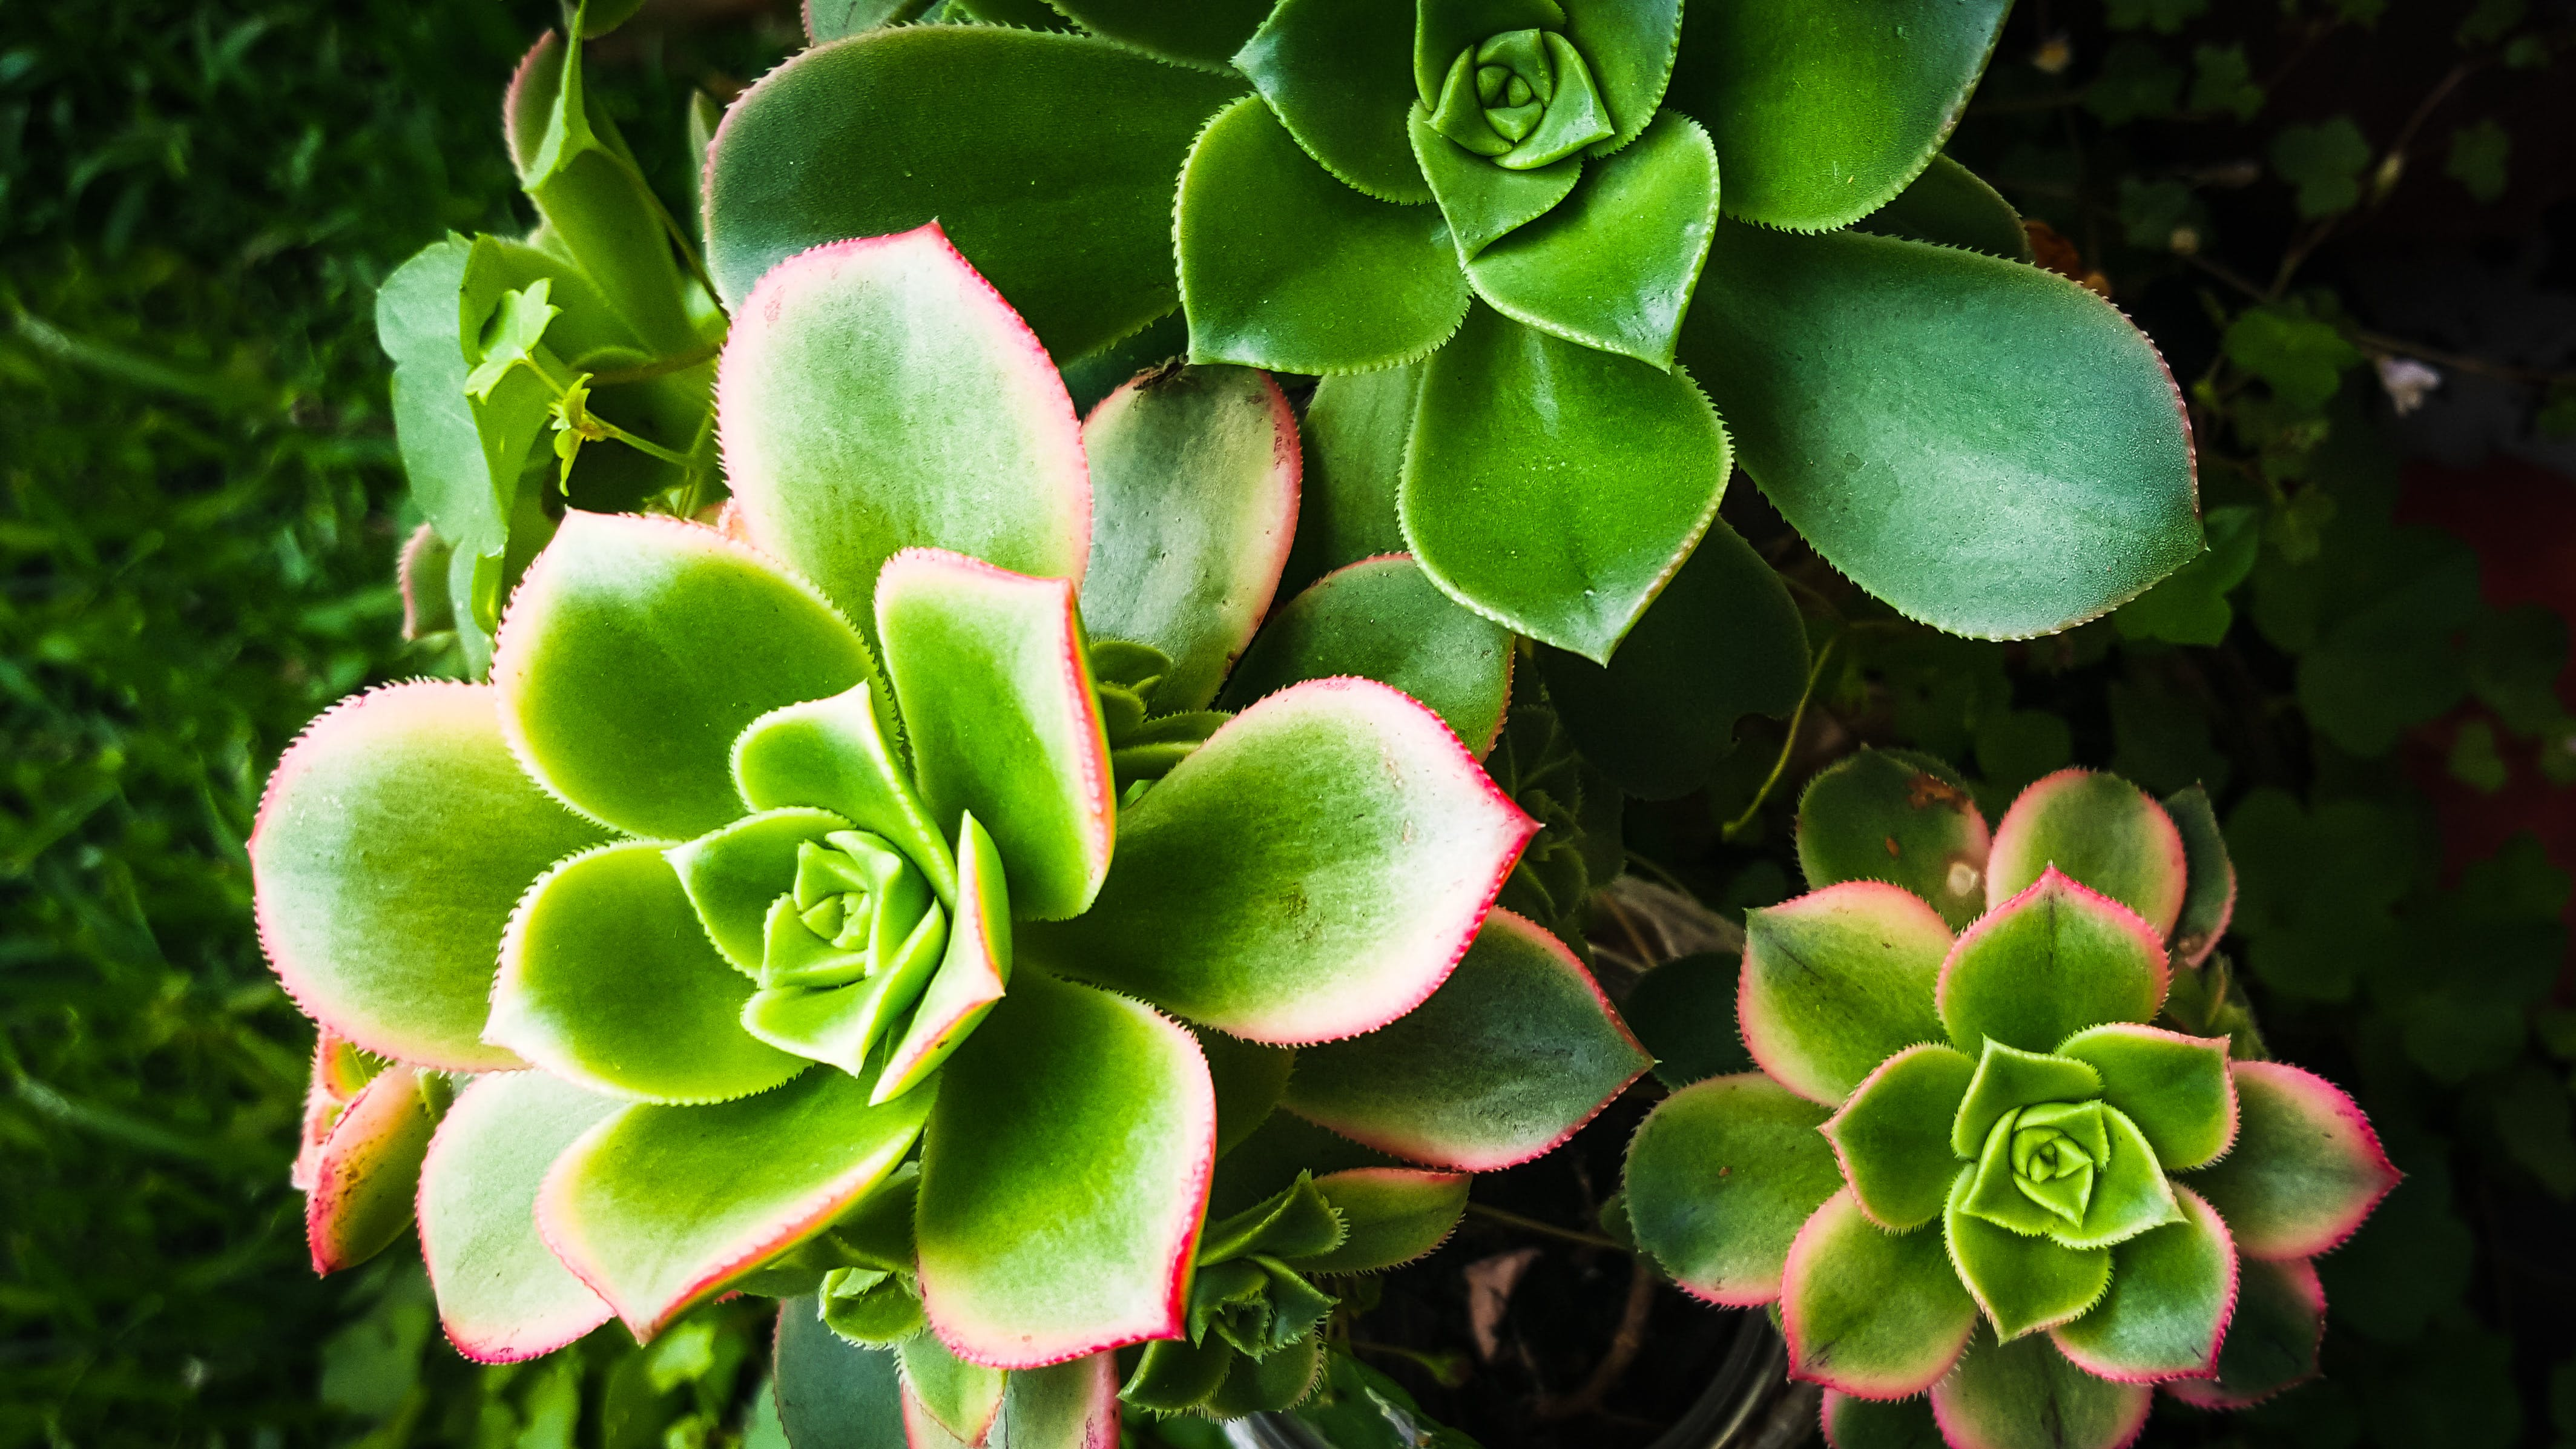 Free stock photo of succulent plant